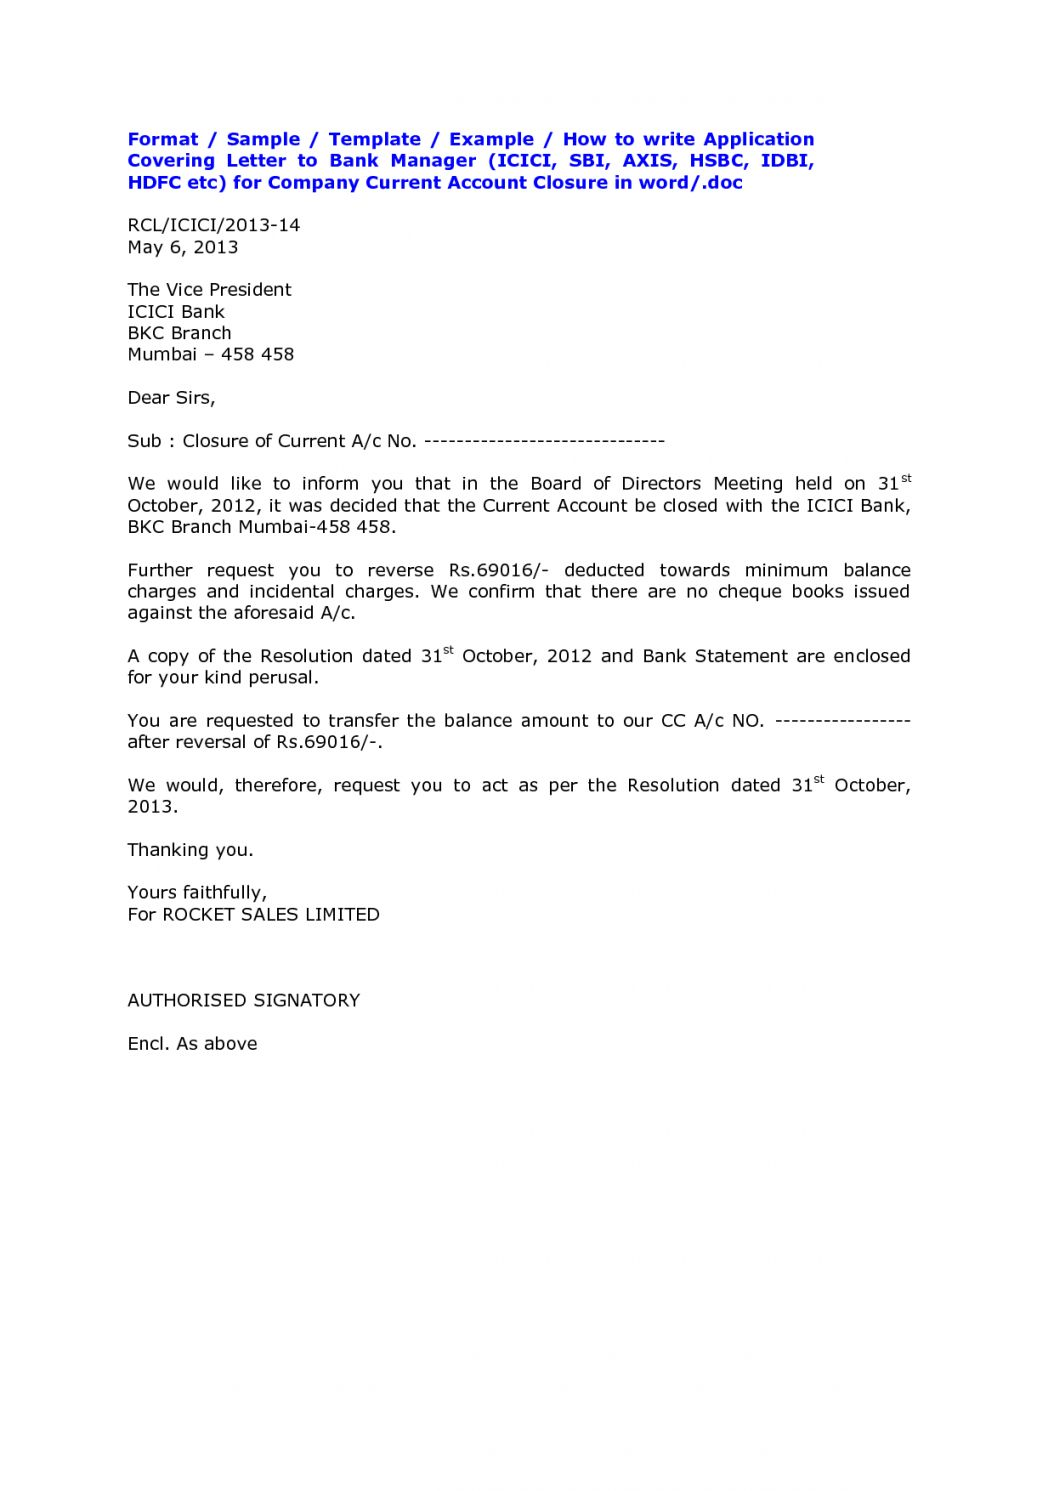 Get Our Sample Of Bank Account Cancellation Letter Template Letter Format Sample Credit Card Statement Letter Templates